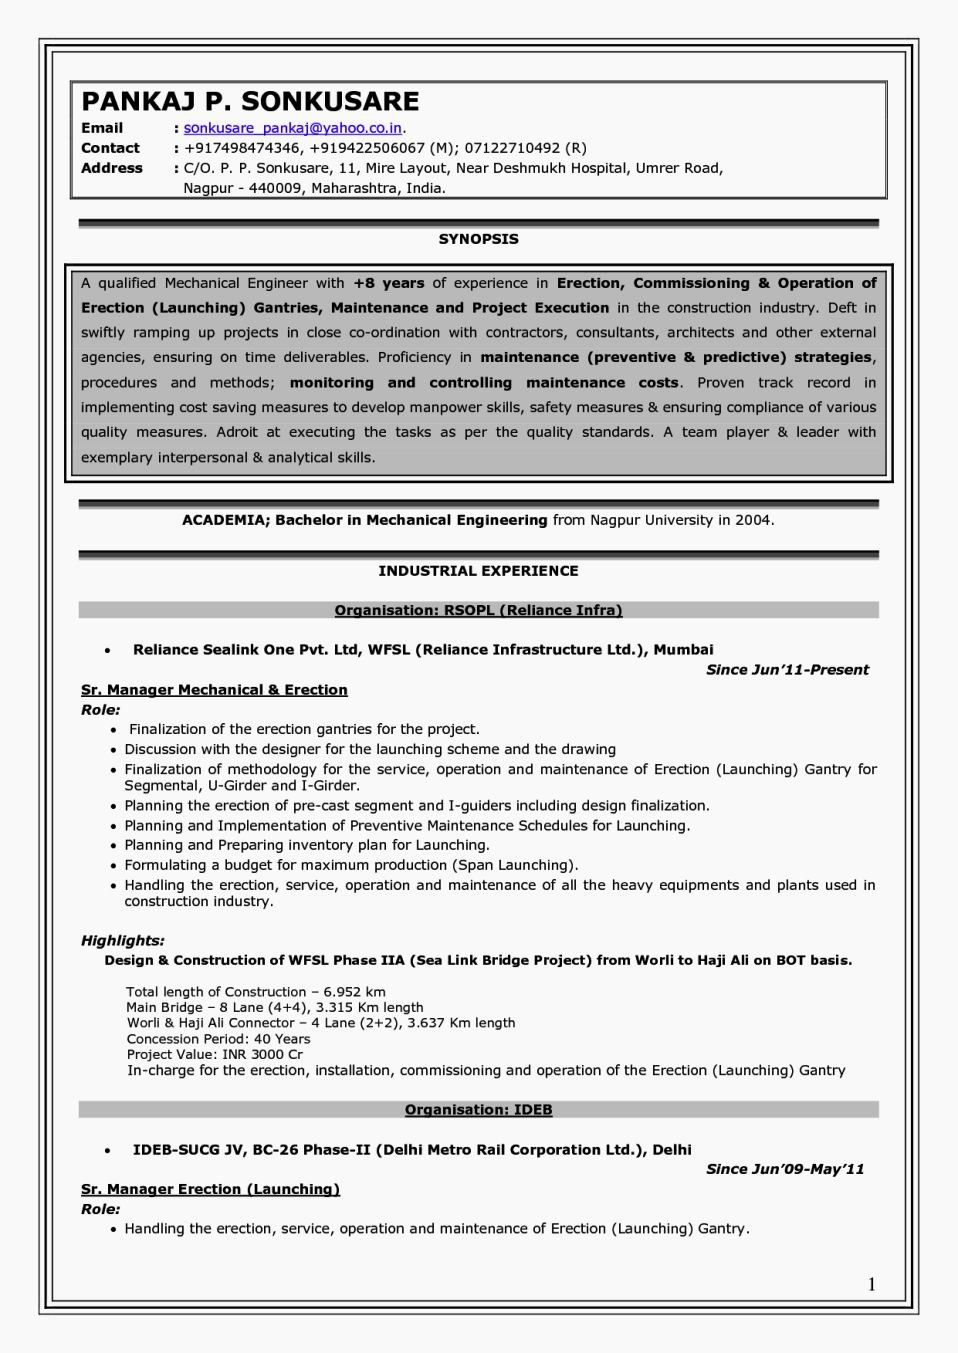 Experienced Mechanical Engineer Resume Awesome Experience Mechanical Engineer Resume Mechanical Engineer Resume Engineering Resume Templates Engineering Resume